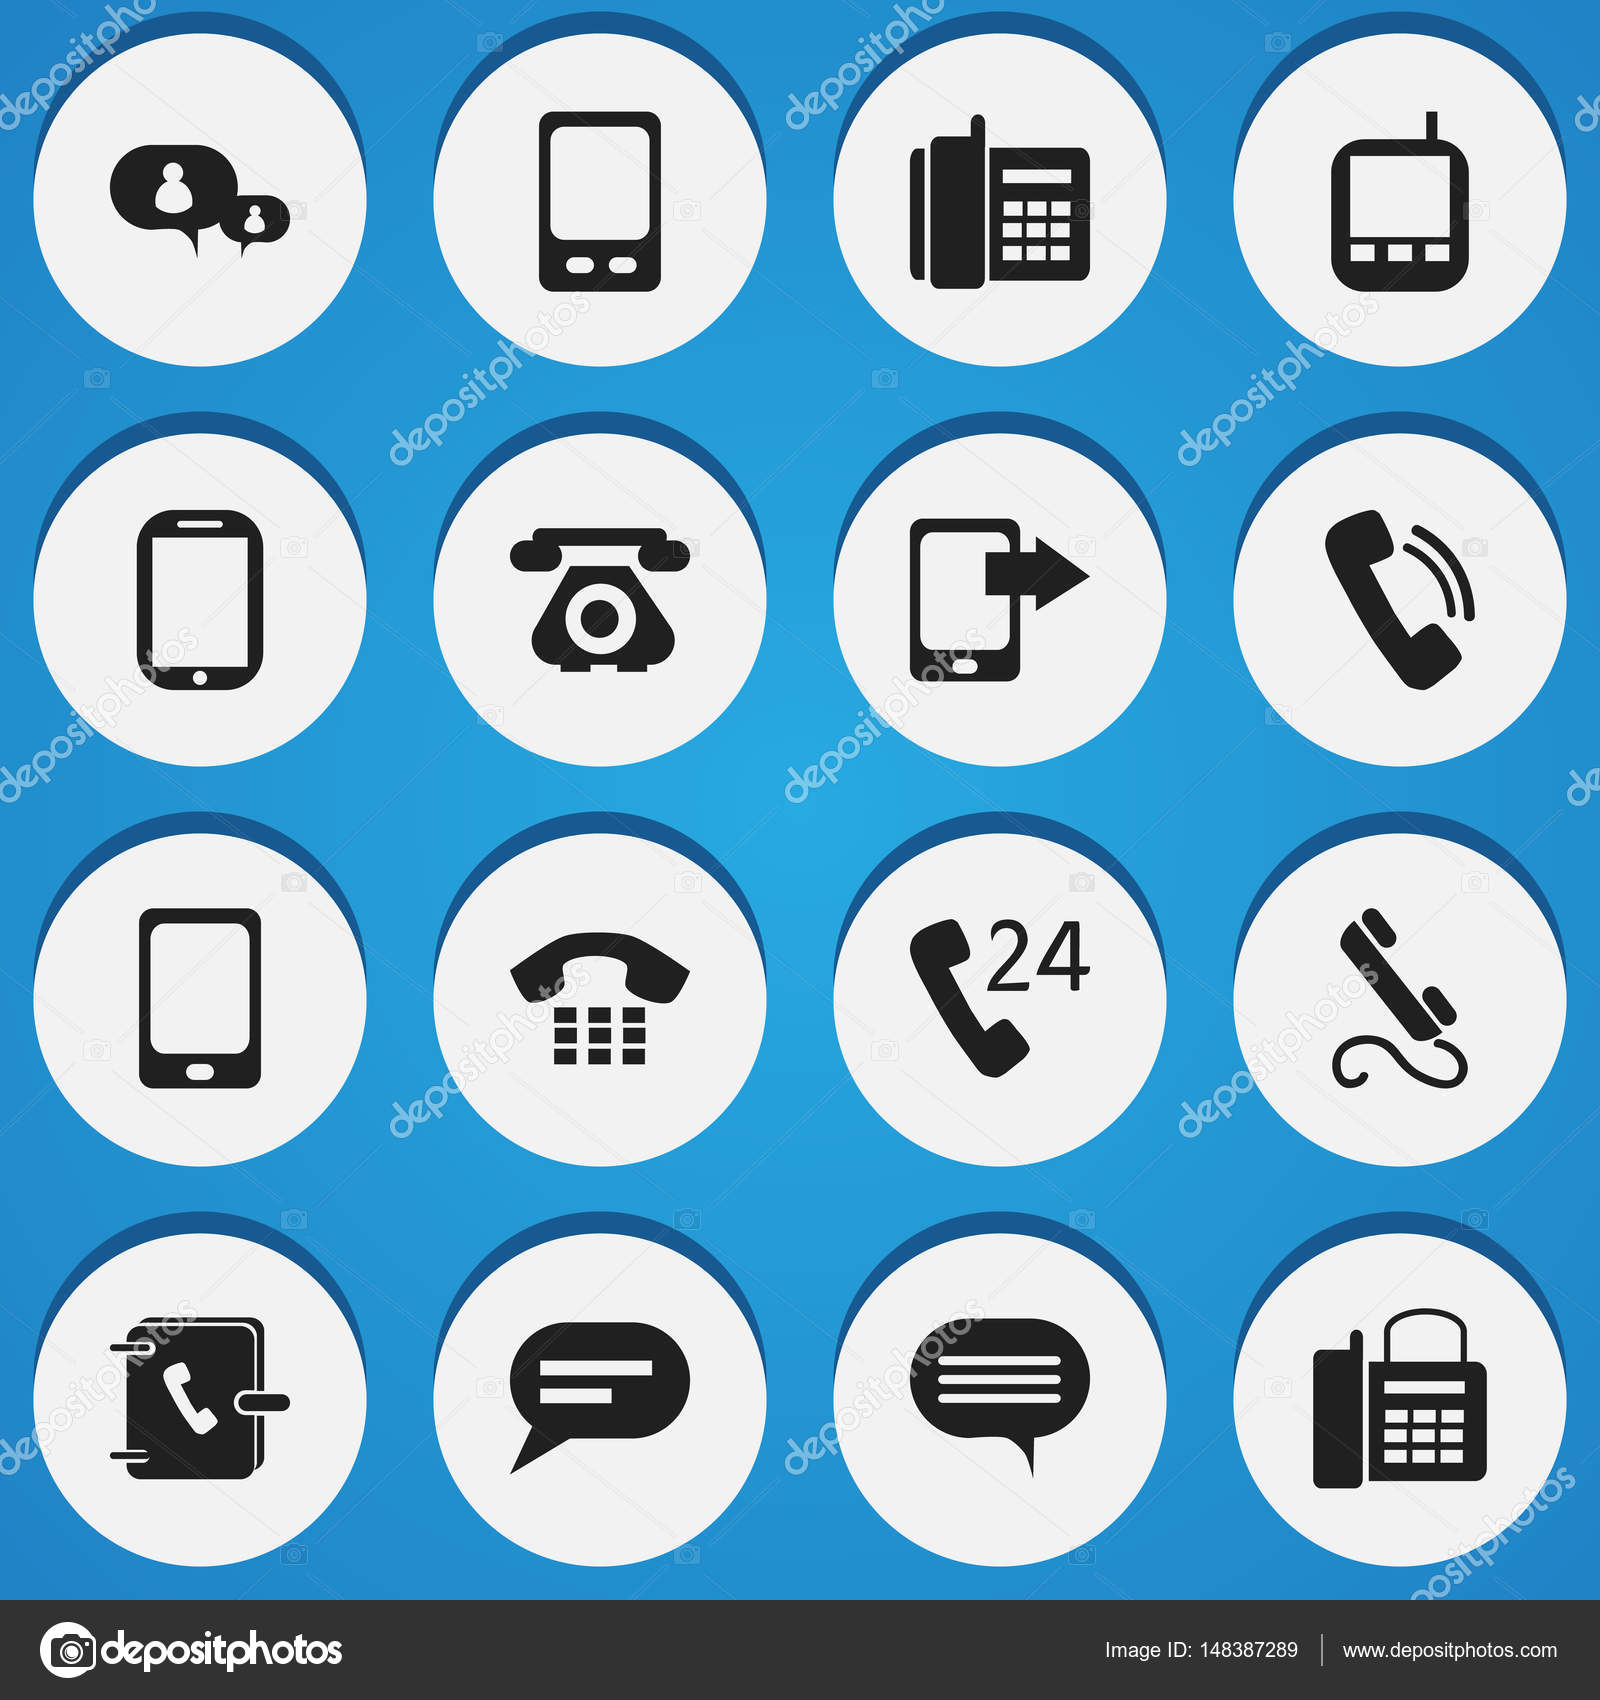 Set Of 16 Editable Phone Icons Includes Symbols Such As Chatting